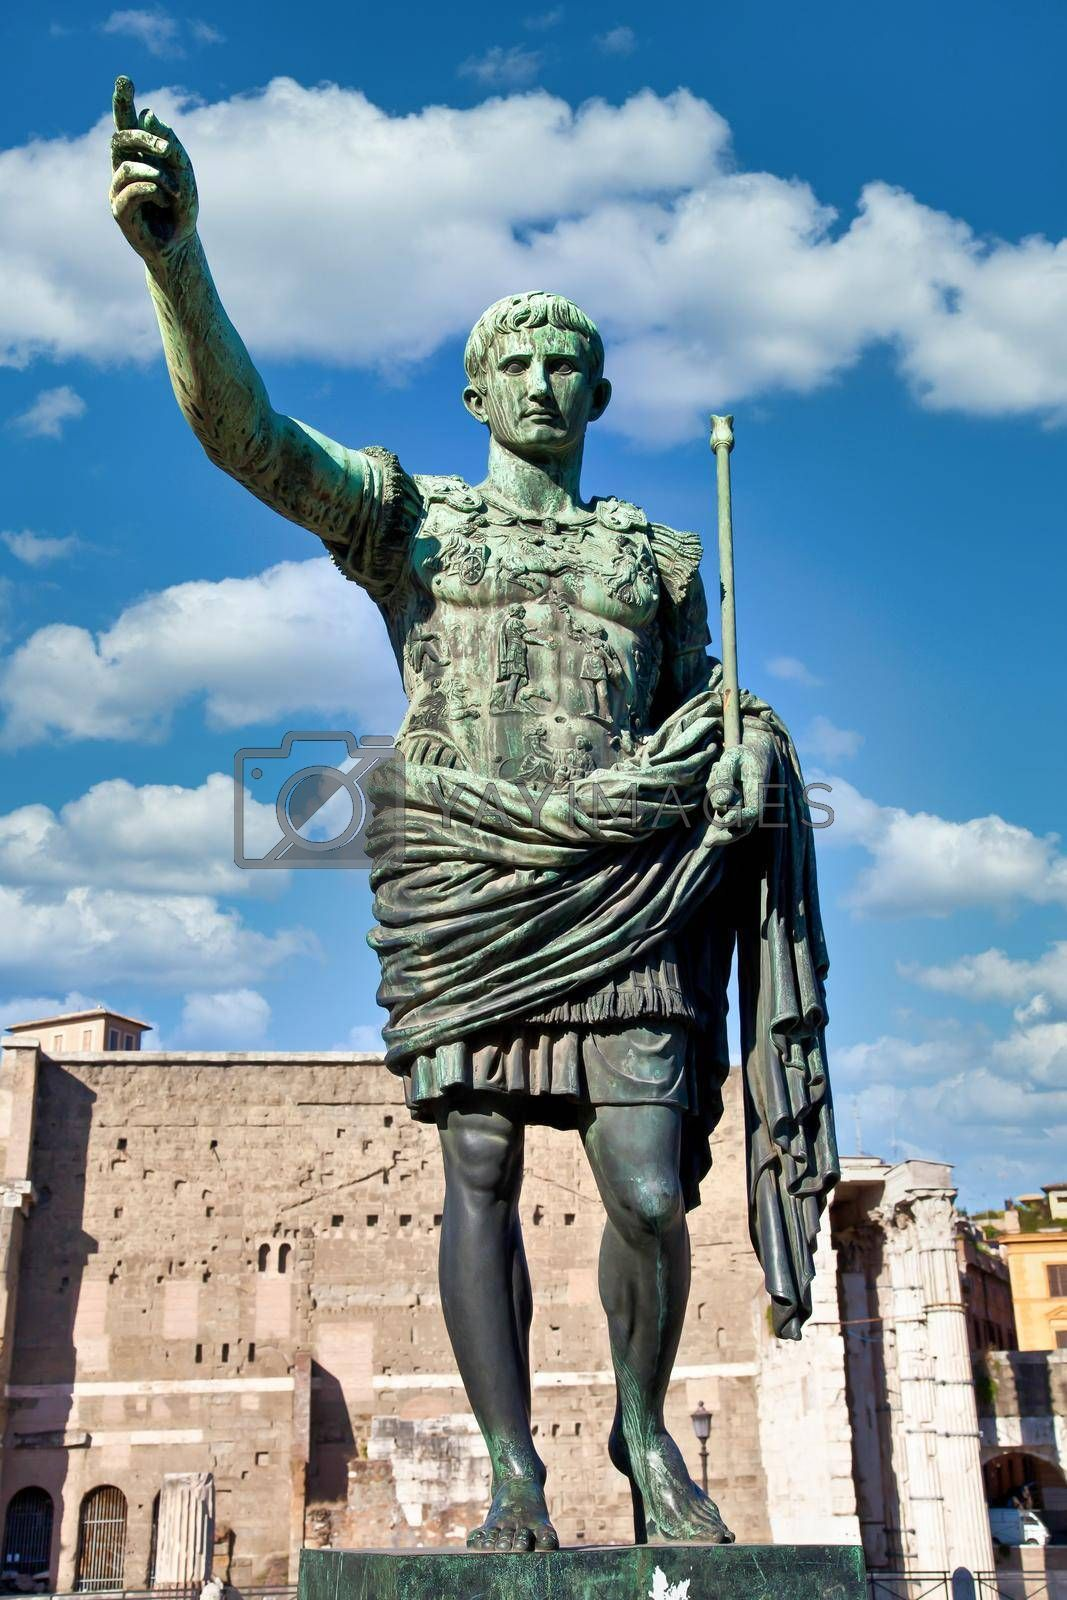 Italy, Rome. Statue in a public street of the roman emperor Gaius Julius Caesar. Concept for authority, domination, leadership and guidance.